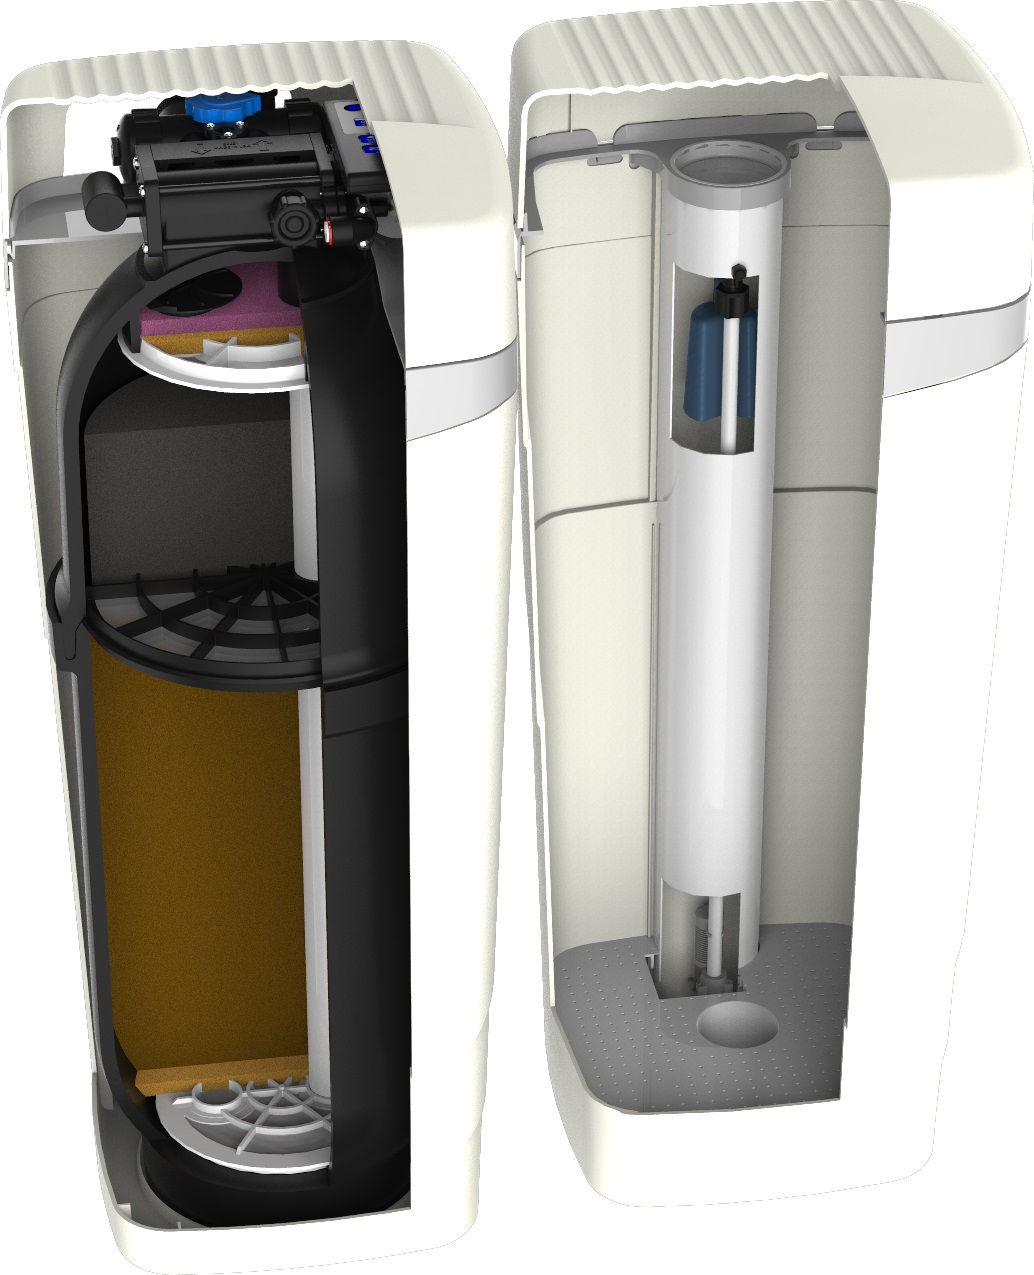 In a single unit with a small footprint, we can soften your water; reduce chlorine and monochloramine; reduce heavy metals like lead; and filter sediment with a self-cleaning, integrated sediment filtration media. The unit takes the same amount of space as half of a clothes washer! Depending on water quality and consumption this unit can clean itself in as few as 24 minutes, using just 20 gallons of water and 1.1 pounds of salt. Highly efficient, highly effective, American-Made.